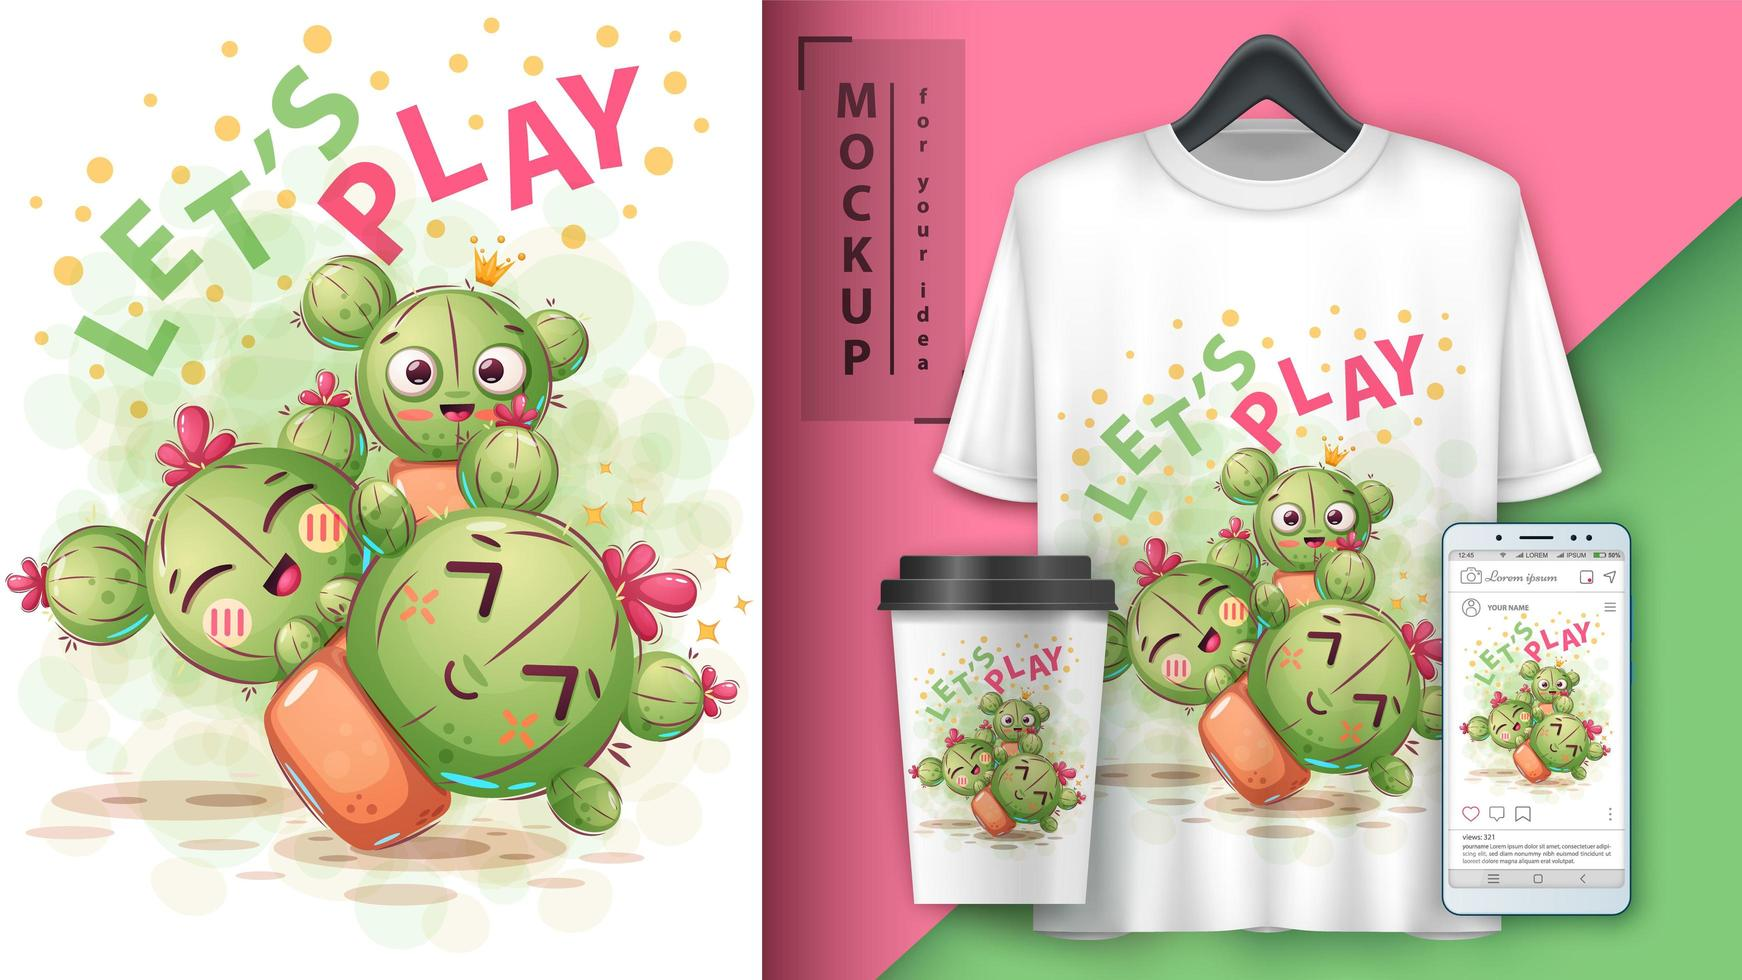 Cute Cactus Let's Play Design vector